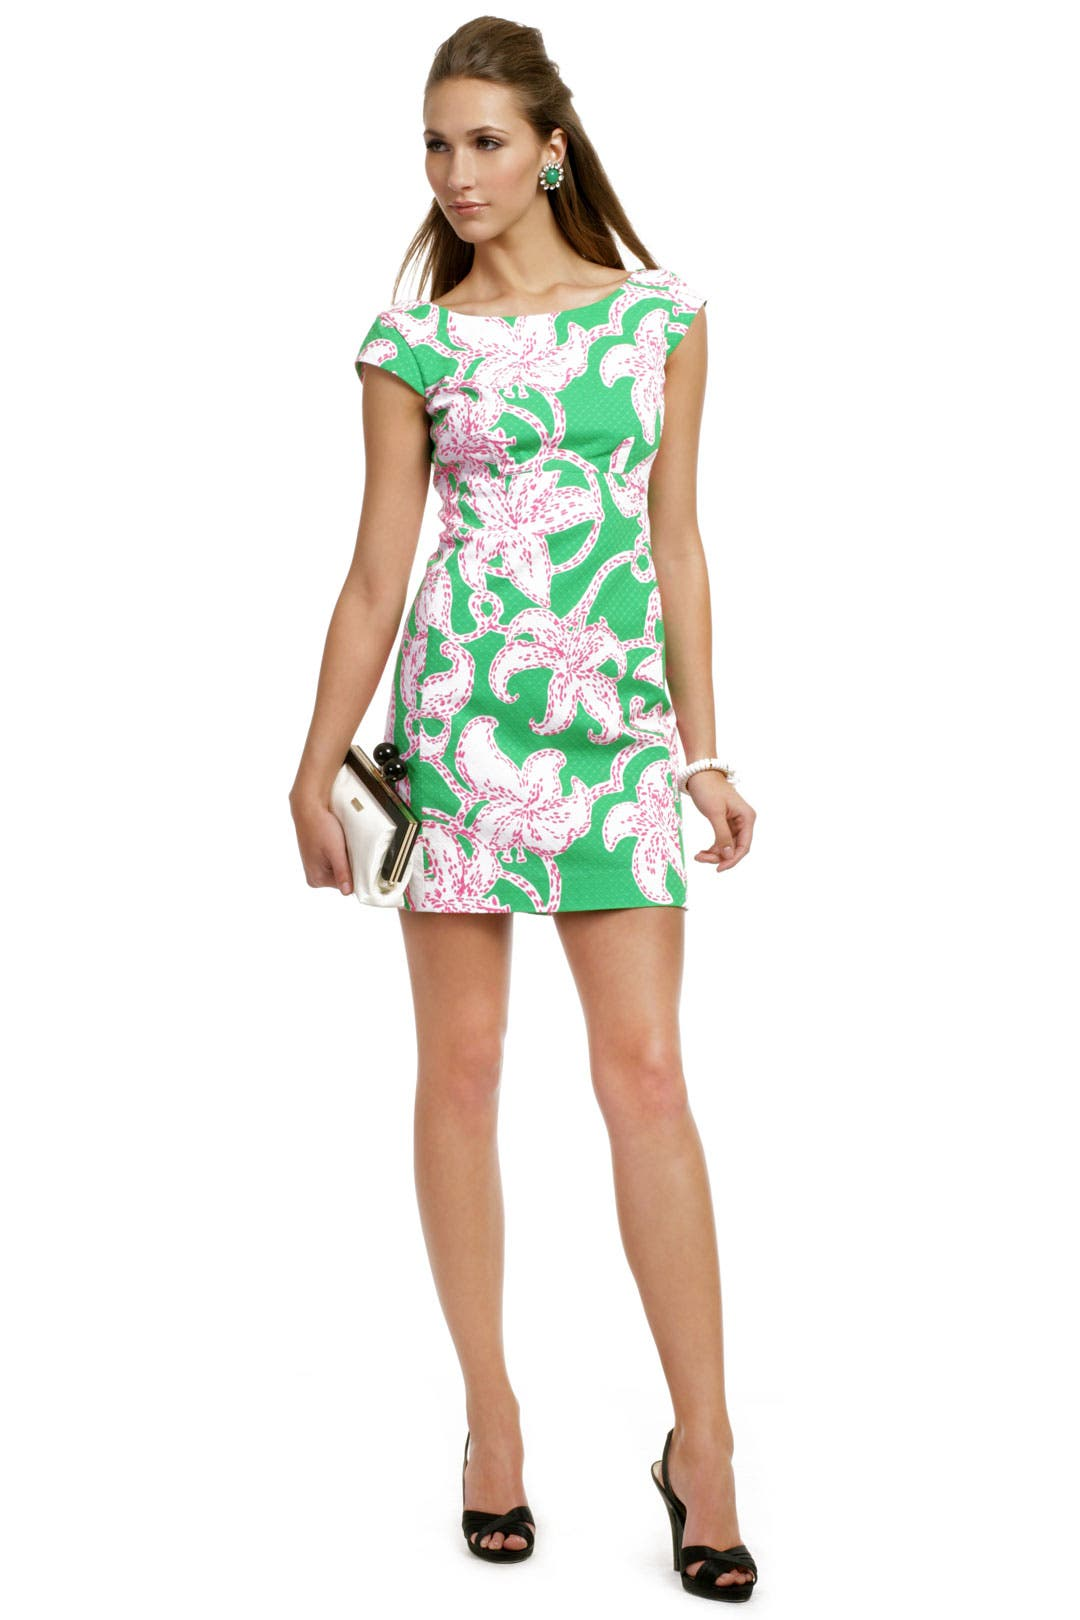 Lilly Pulitzer Sale Dresses Online Sale